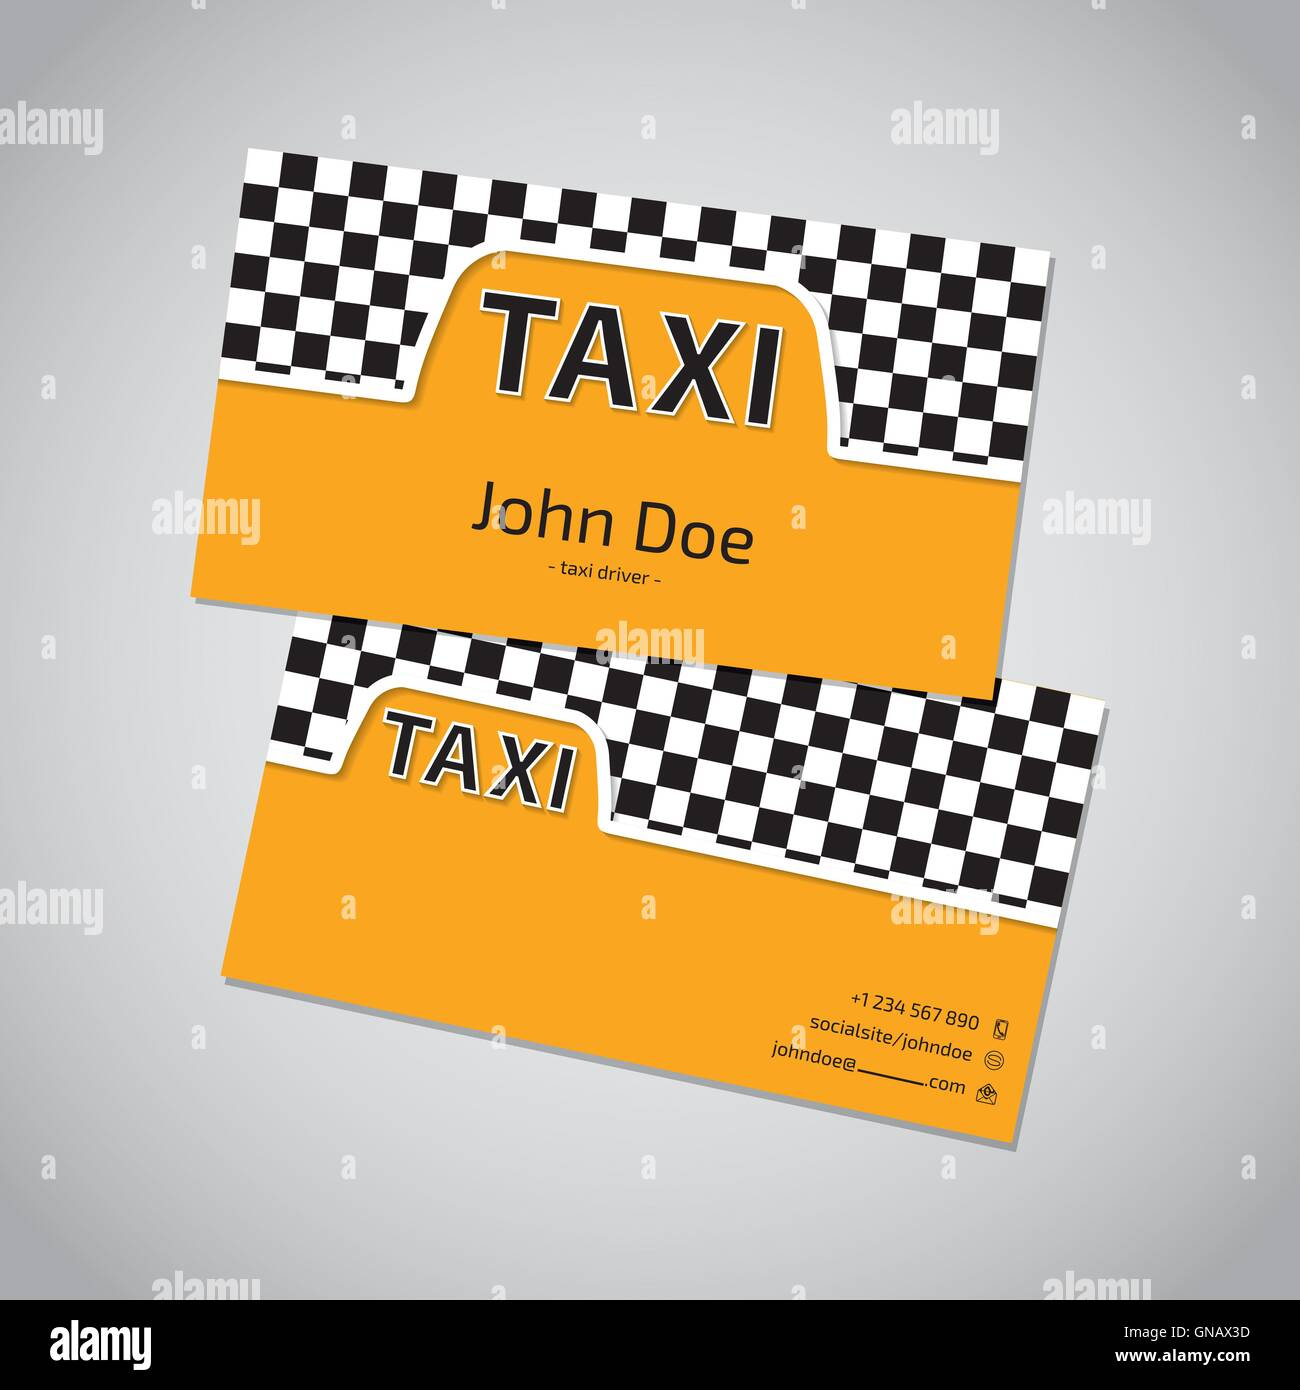 Taxi business card with cab symbol Stock Vector Art & Illustration ...